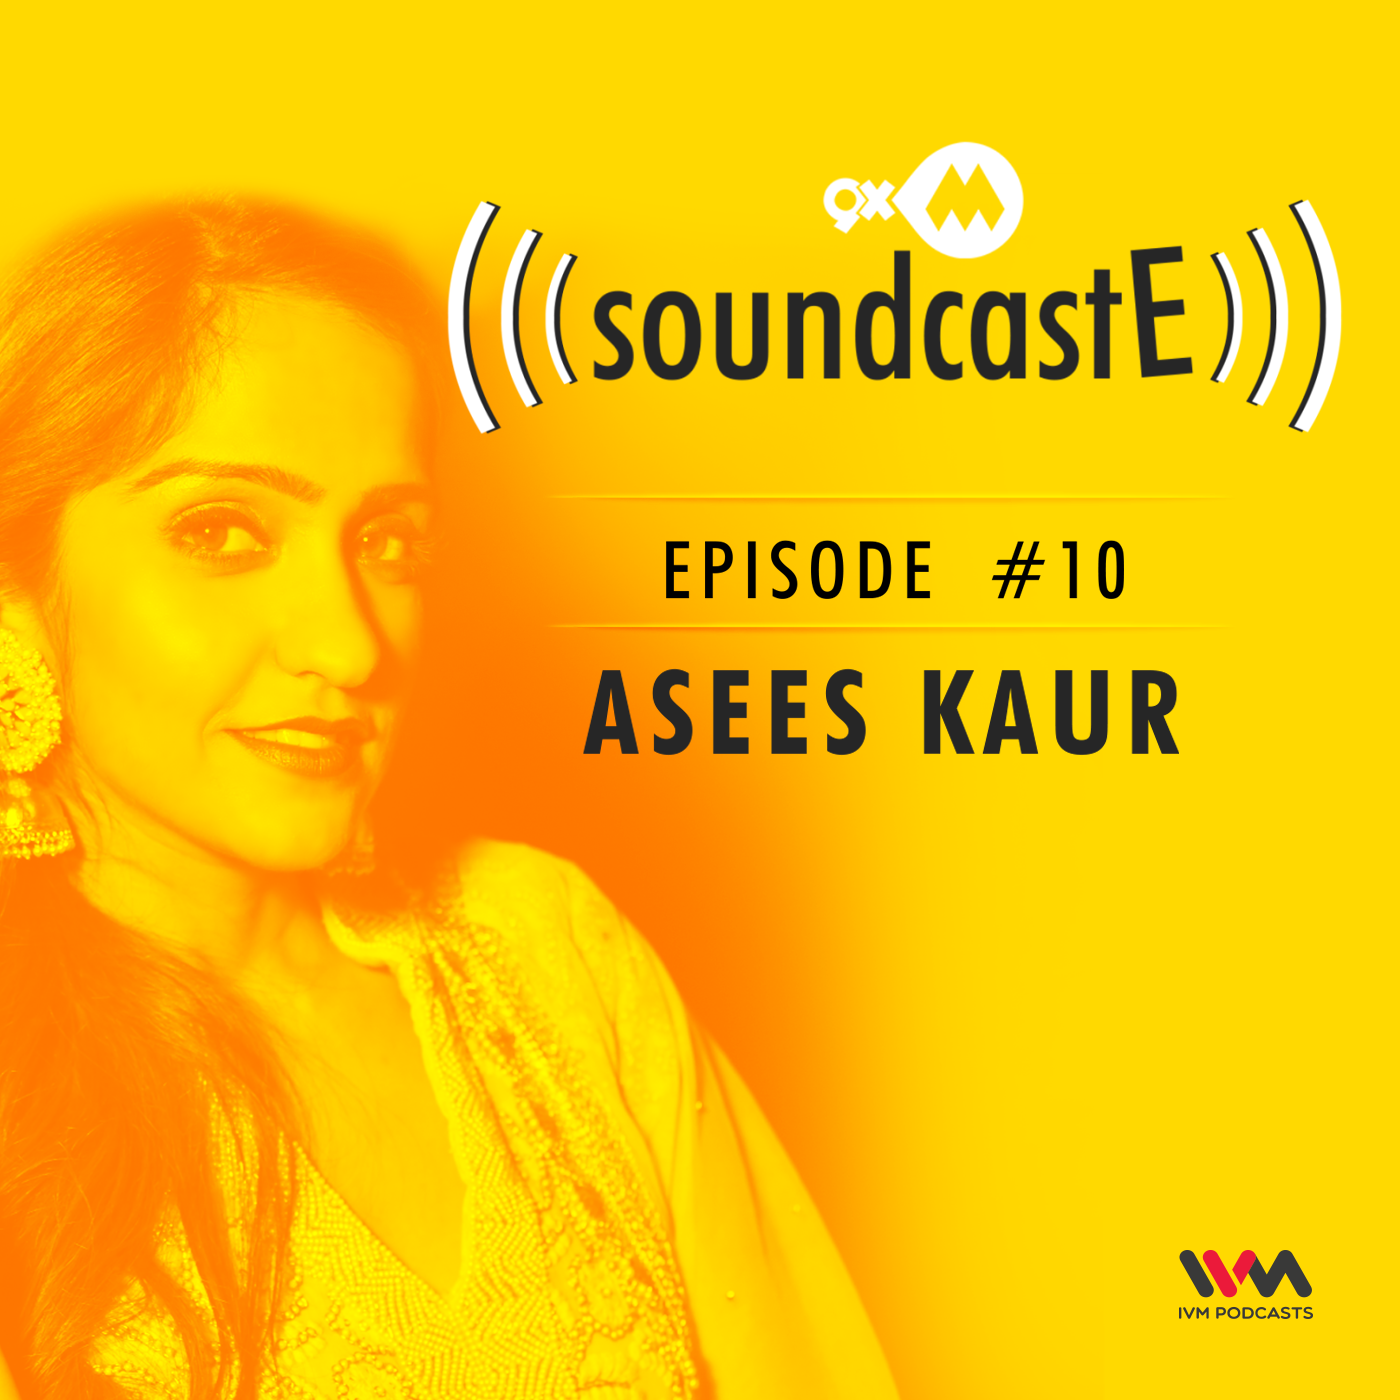 Ep. 10: 9XM SoundcastE with Asees Kaur